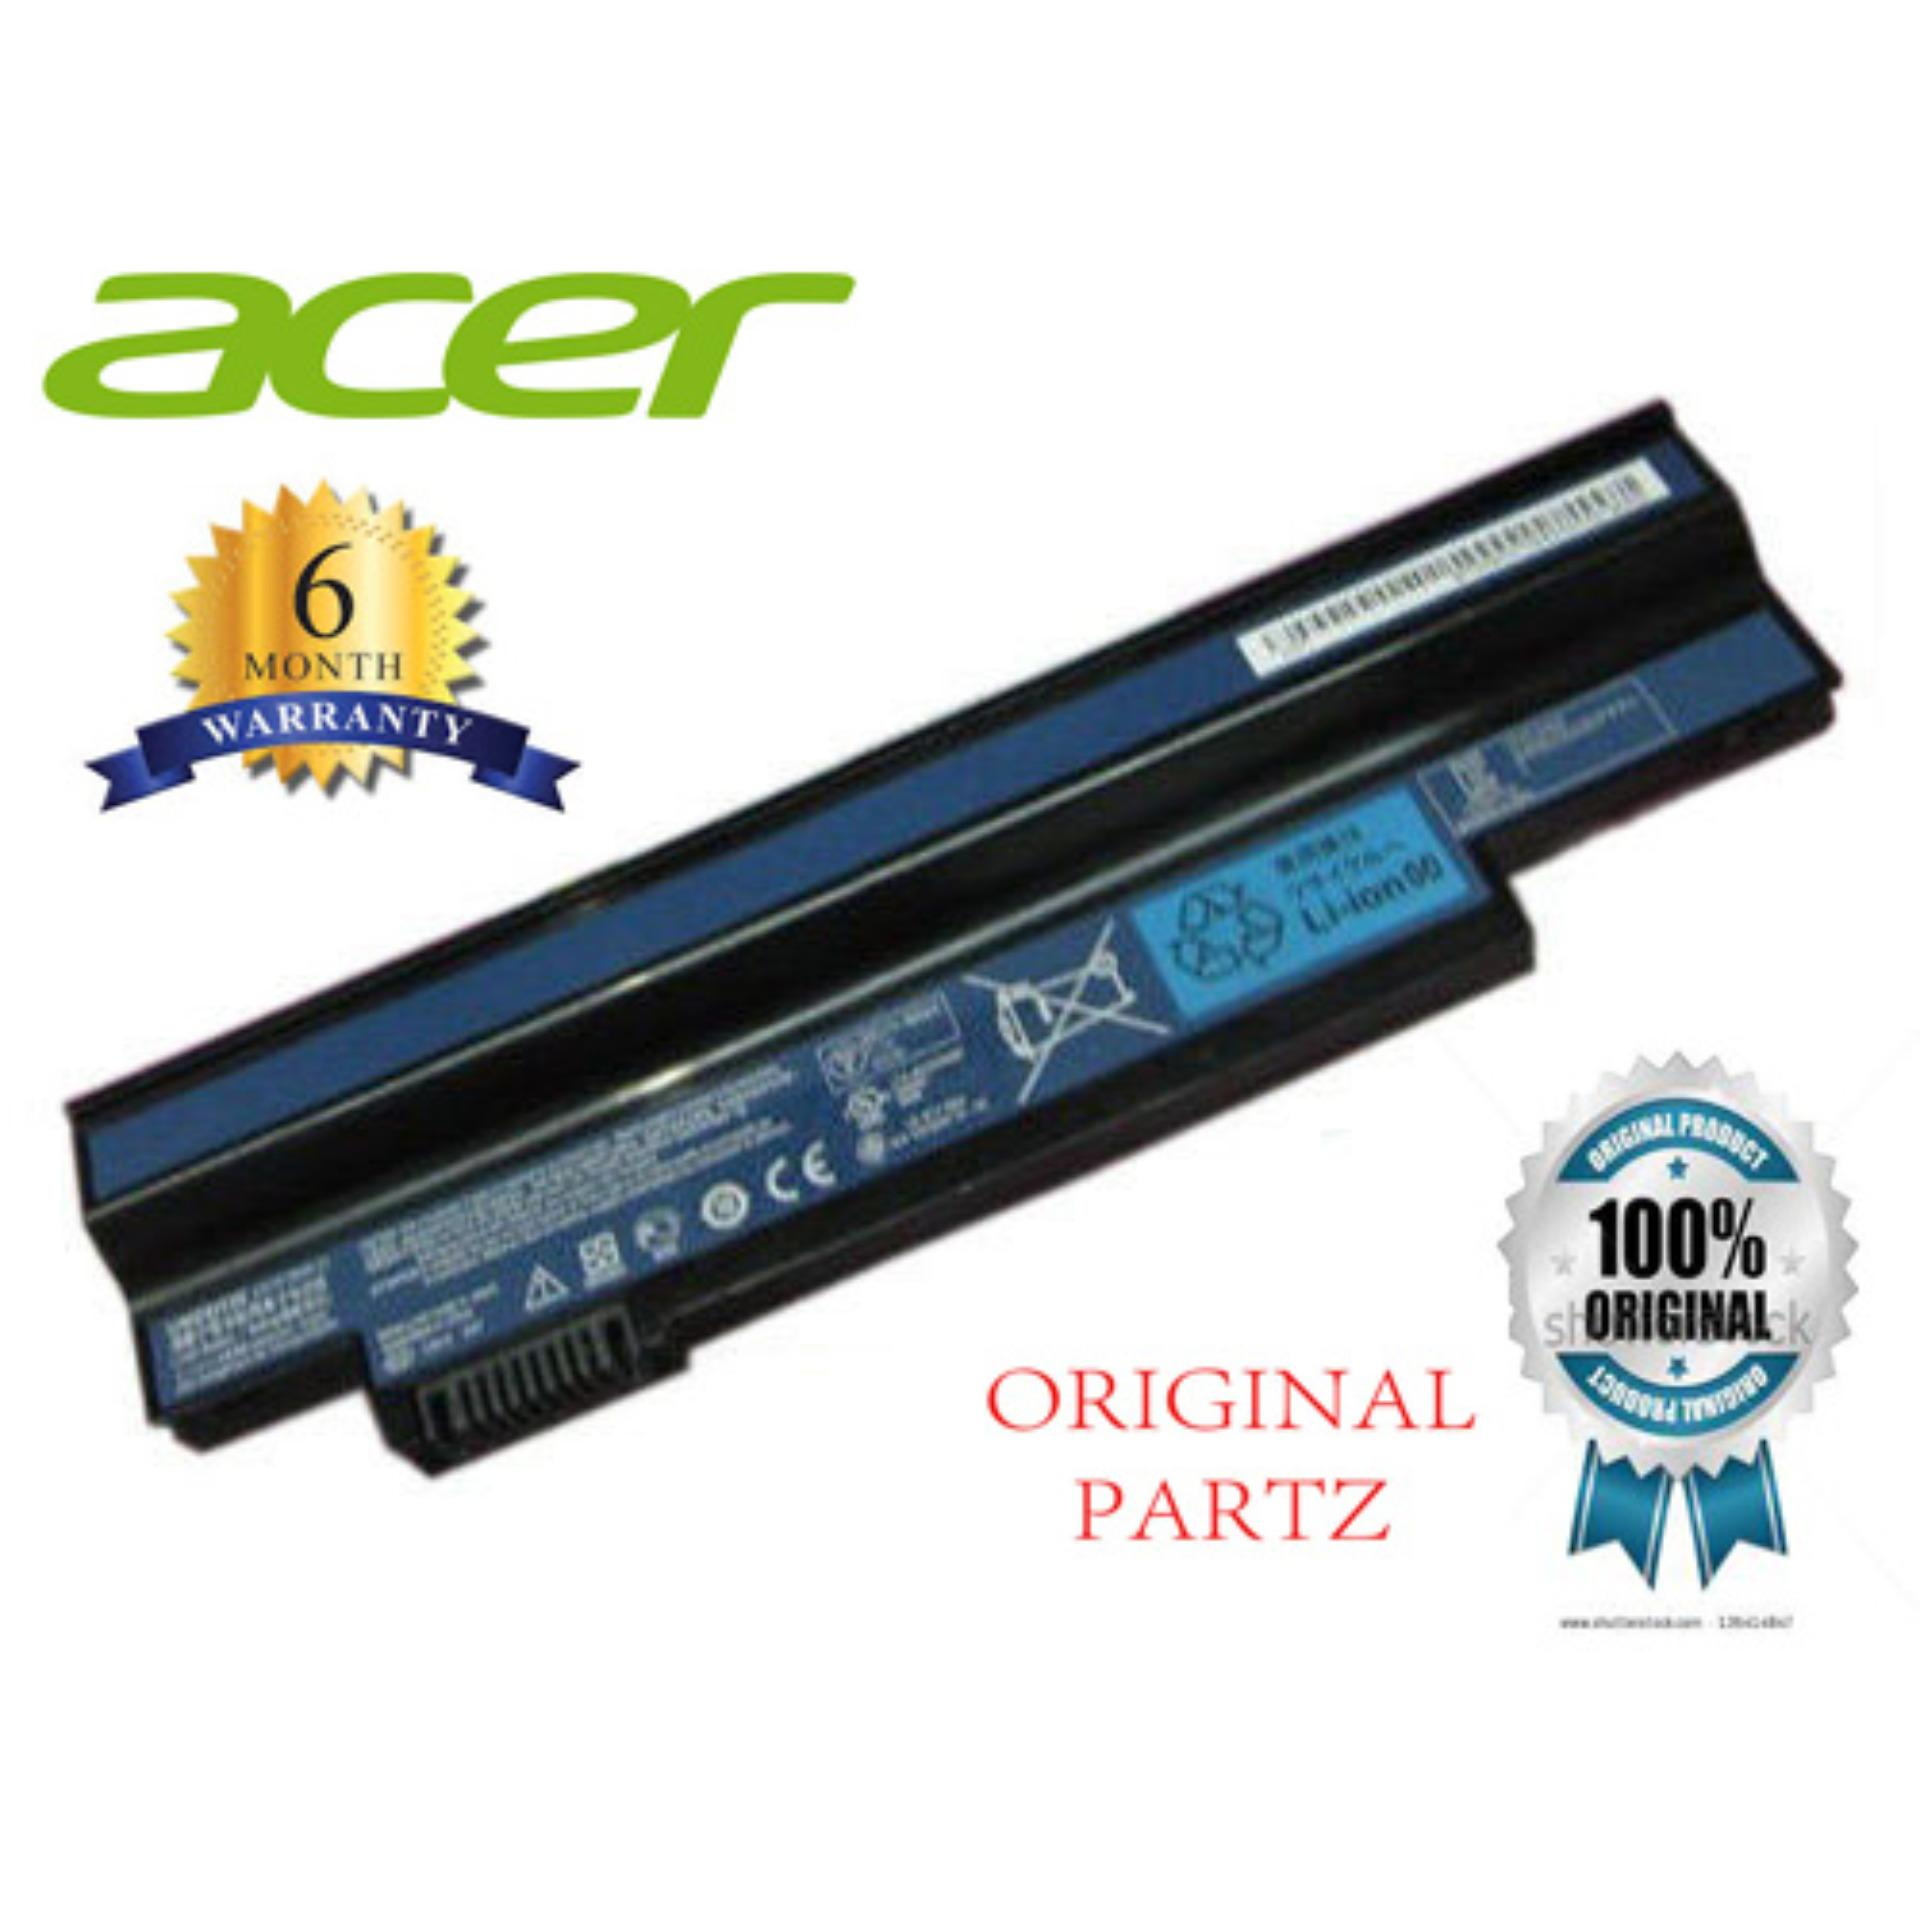 Harga Acer Original Baterai Notebook Laptop Aspire One 532H Hitam Black Branded